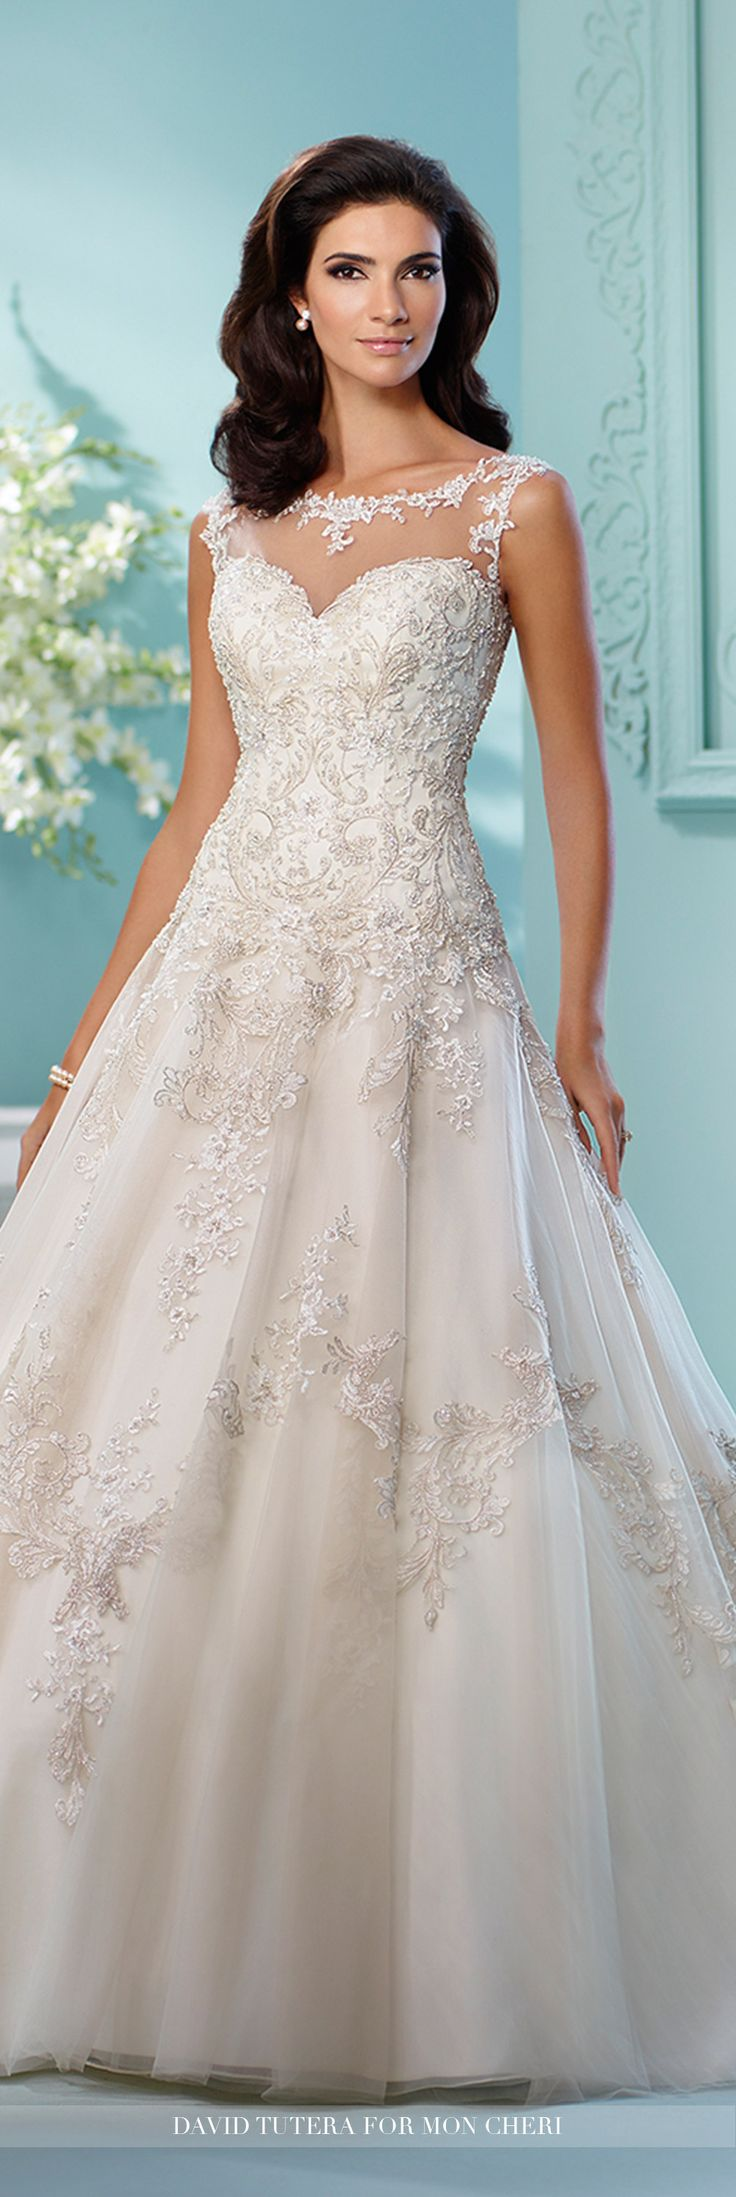 212 best david tutera wedding dresses images on pinterest wedding david tutera for mon cheri 216250 lapis tulle and organza over satin full a junglespirit Choice Image